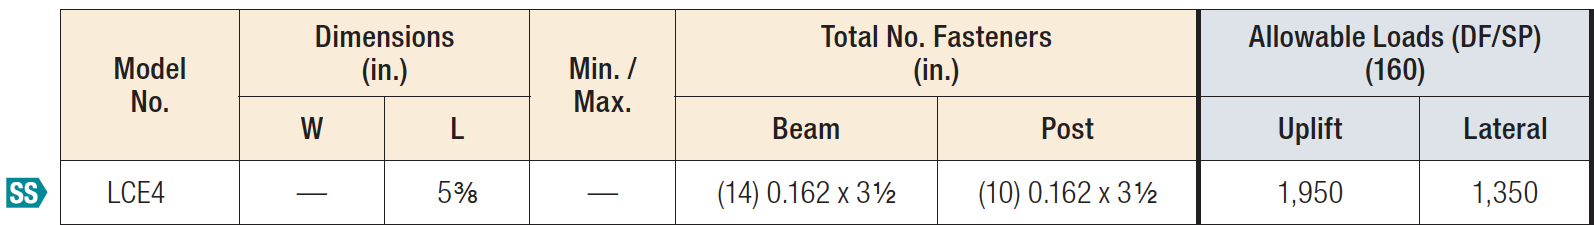 LCE4 Post Caps Load Table